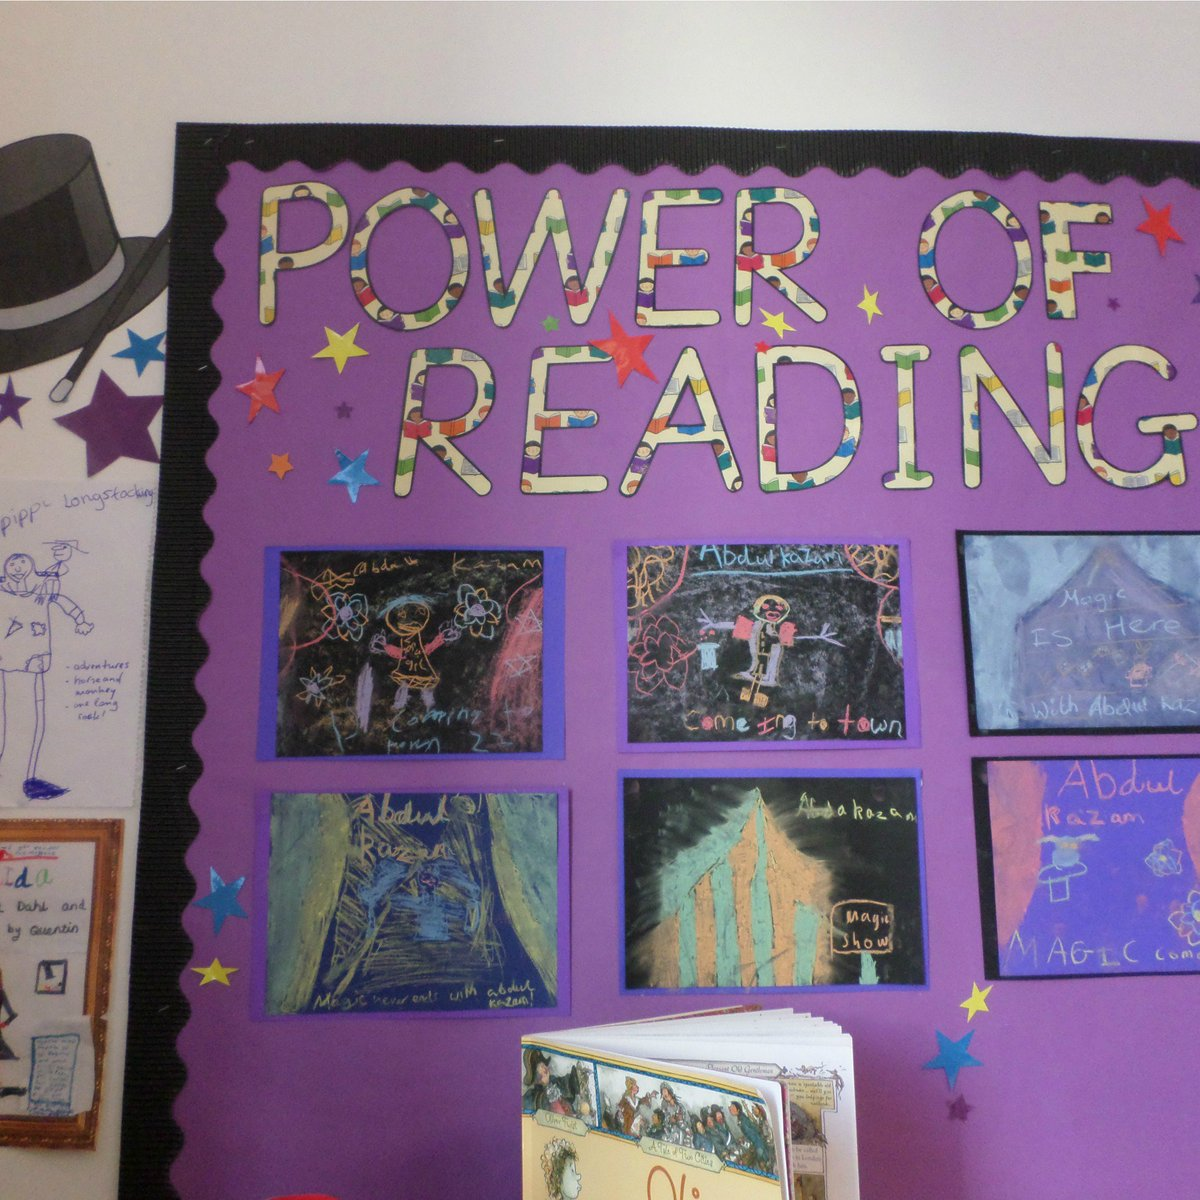 Are you a #PowerOfReading teacher? Join our NEW group to share your work, discuss lesson plans and see whats been working for other teachers over on our Facebook page! facebook.com/groups/powerof…